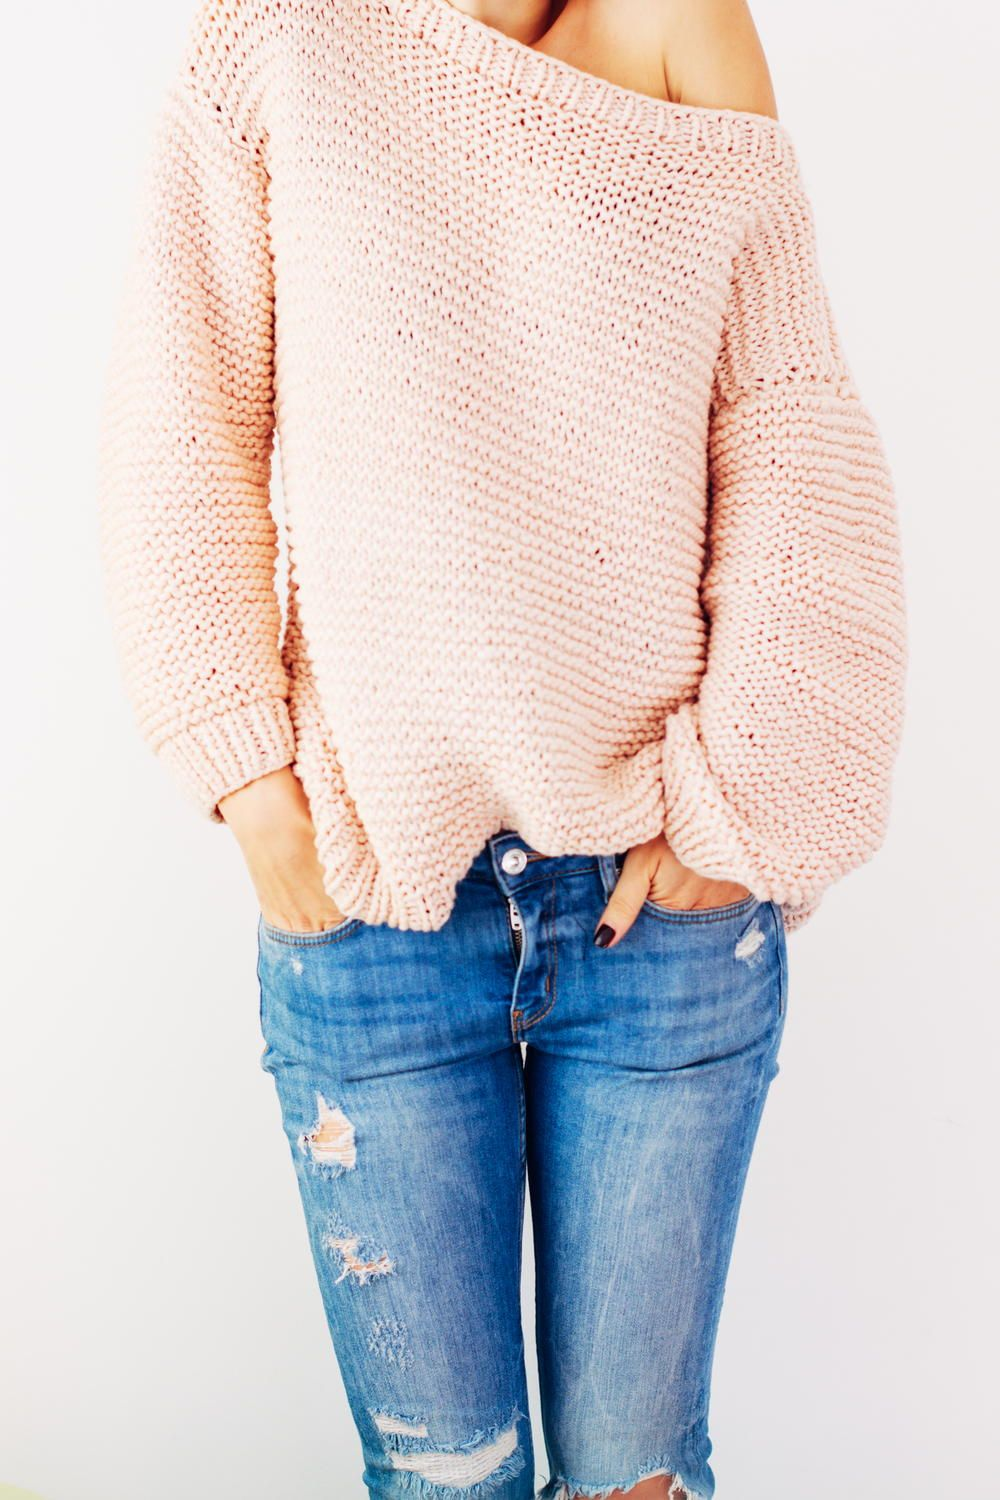 00233c3f9b8103 Peachy Keen Oversize Knitted Sweater